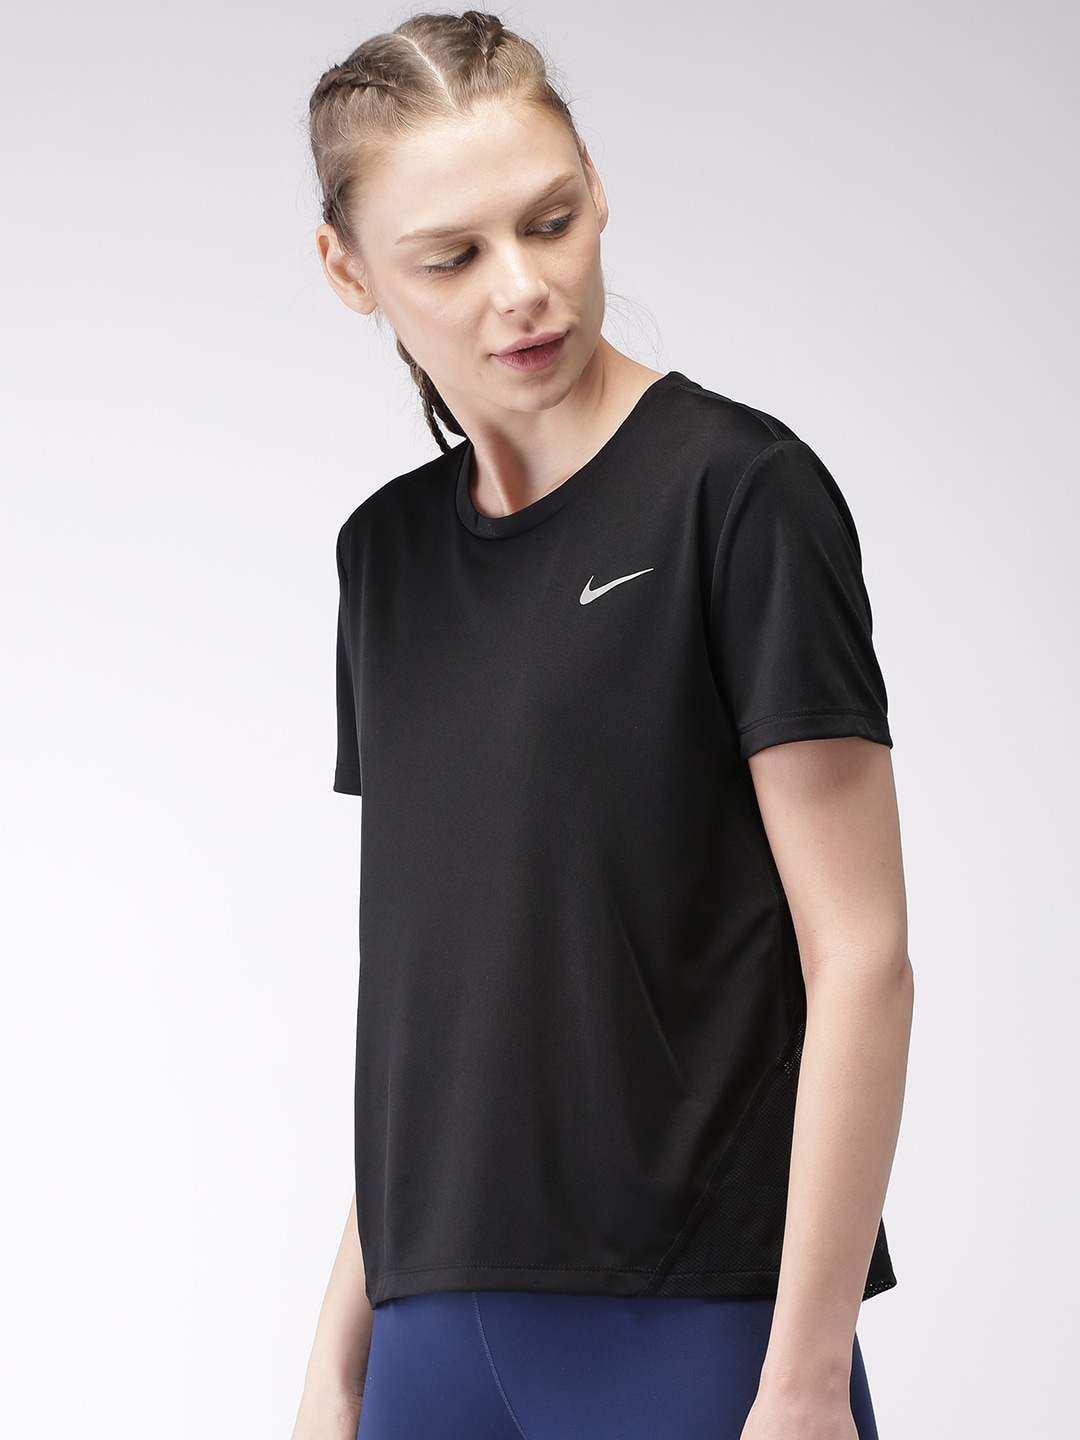 e635535a1d23 Nike Miler Tshirts - Buy Nike Miler Tshirts online in India